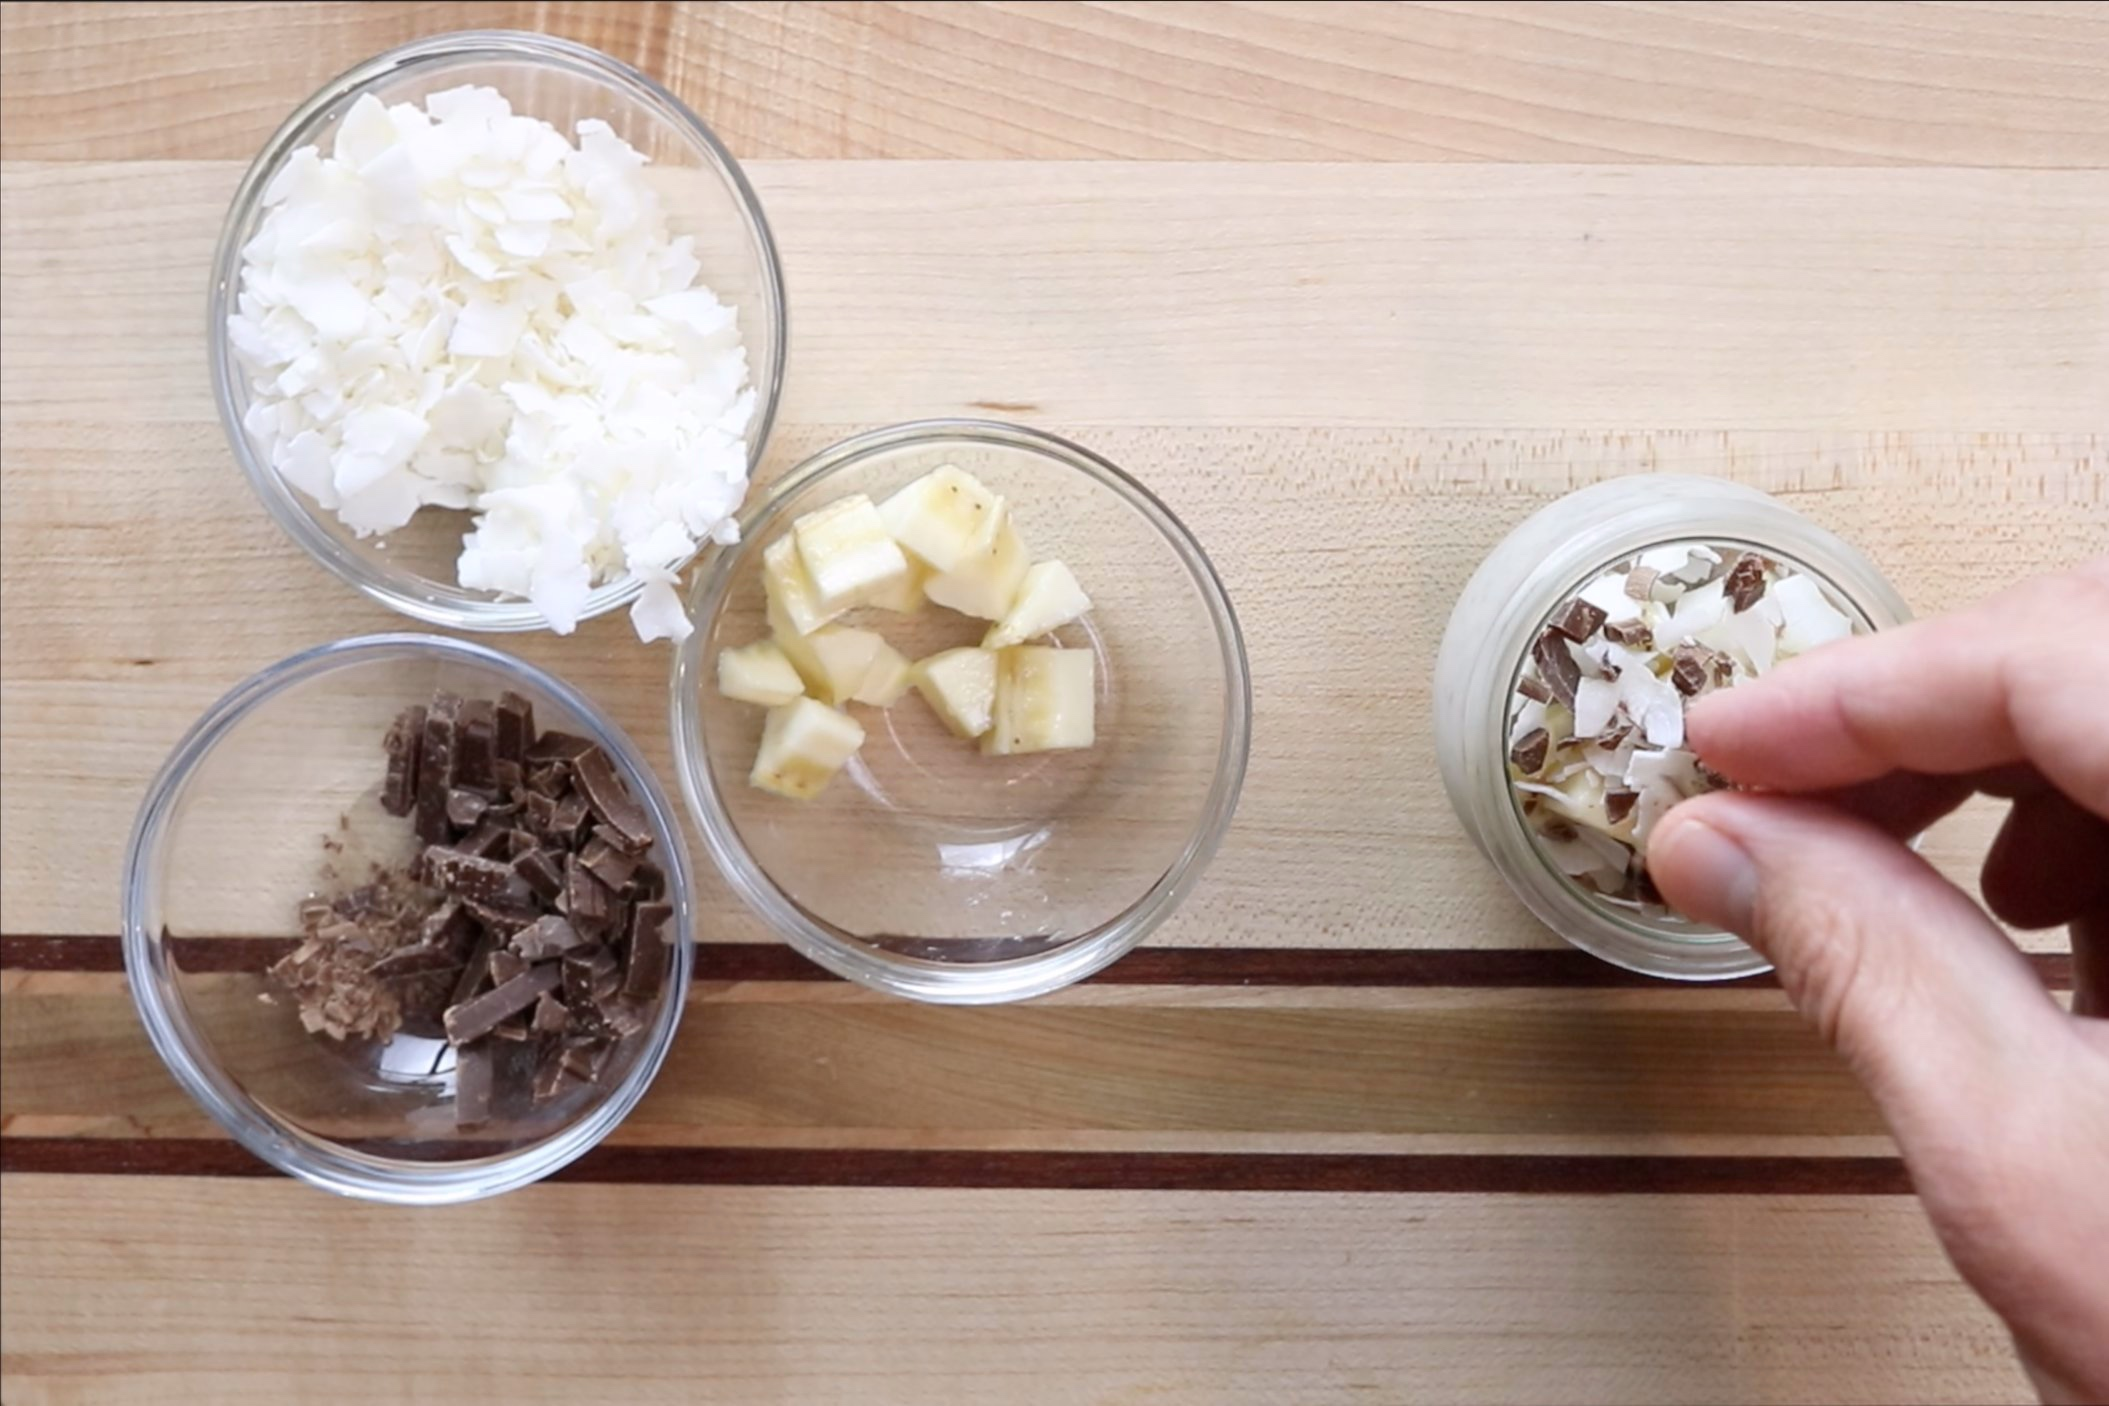 7. When it's ready to eat, top with chopped bananas, coconut and chocolate shavings. -